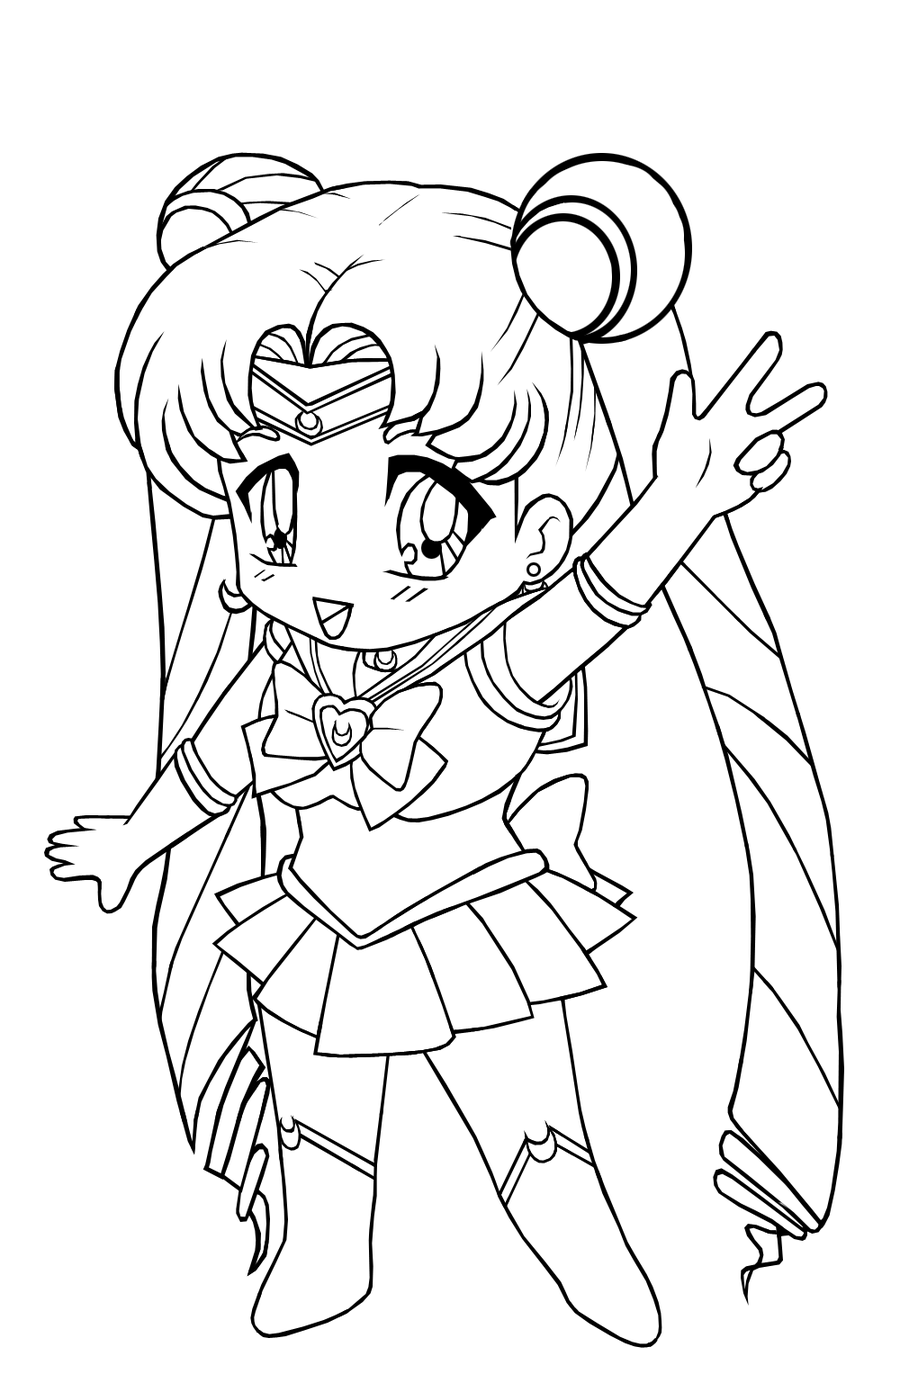 Anime Coloring Pages For Kids - Coloring Home